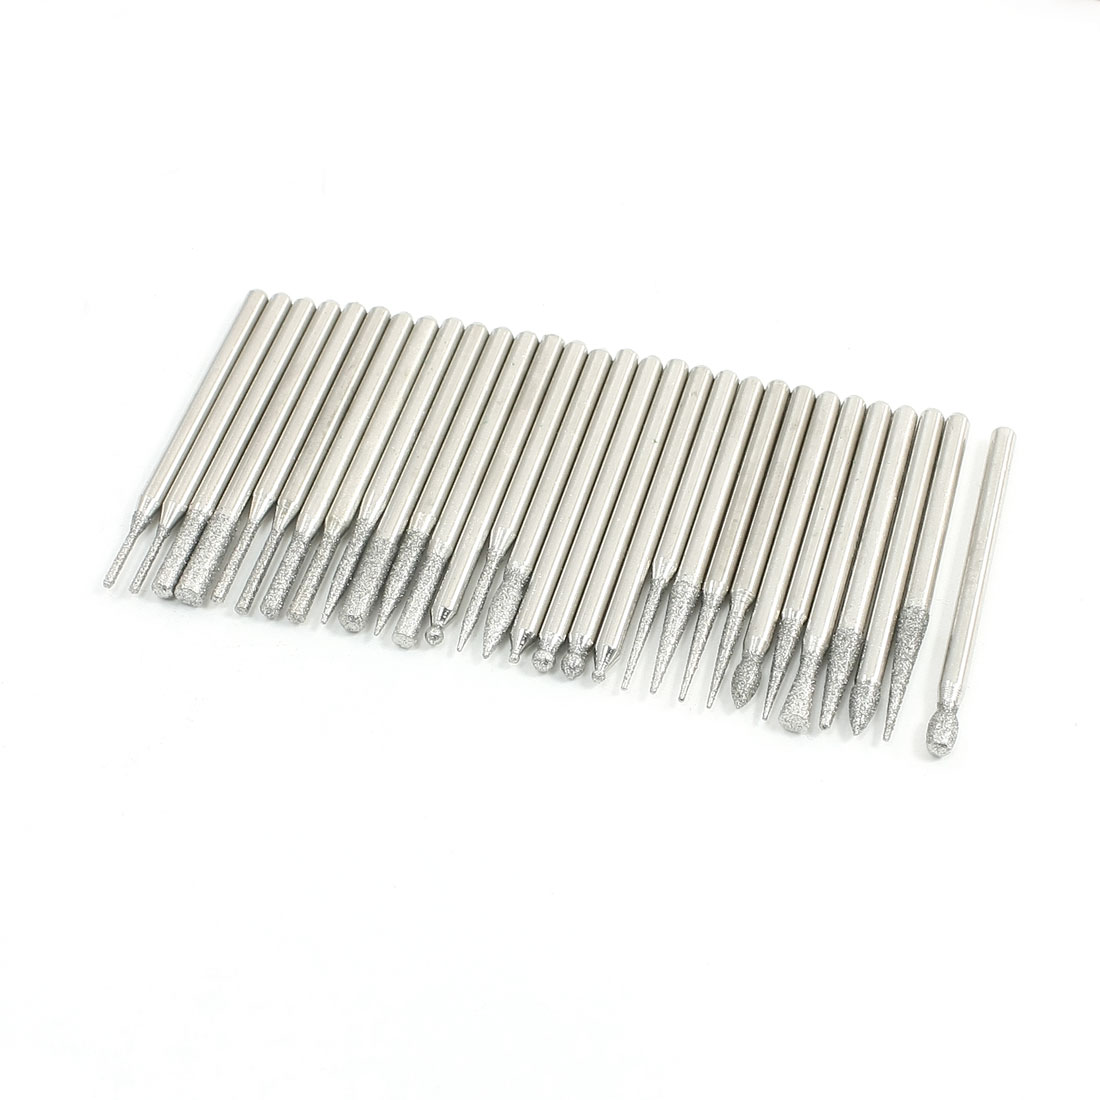 Unique Bargains 30 Pcs Cylindrical Tree Tip Diamond Points Grinding Drill Bit w Holder